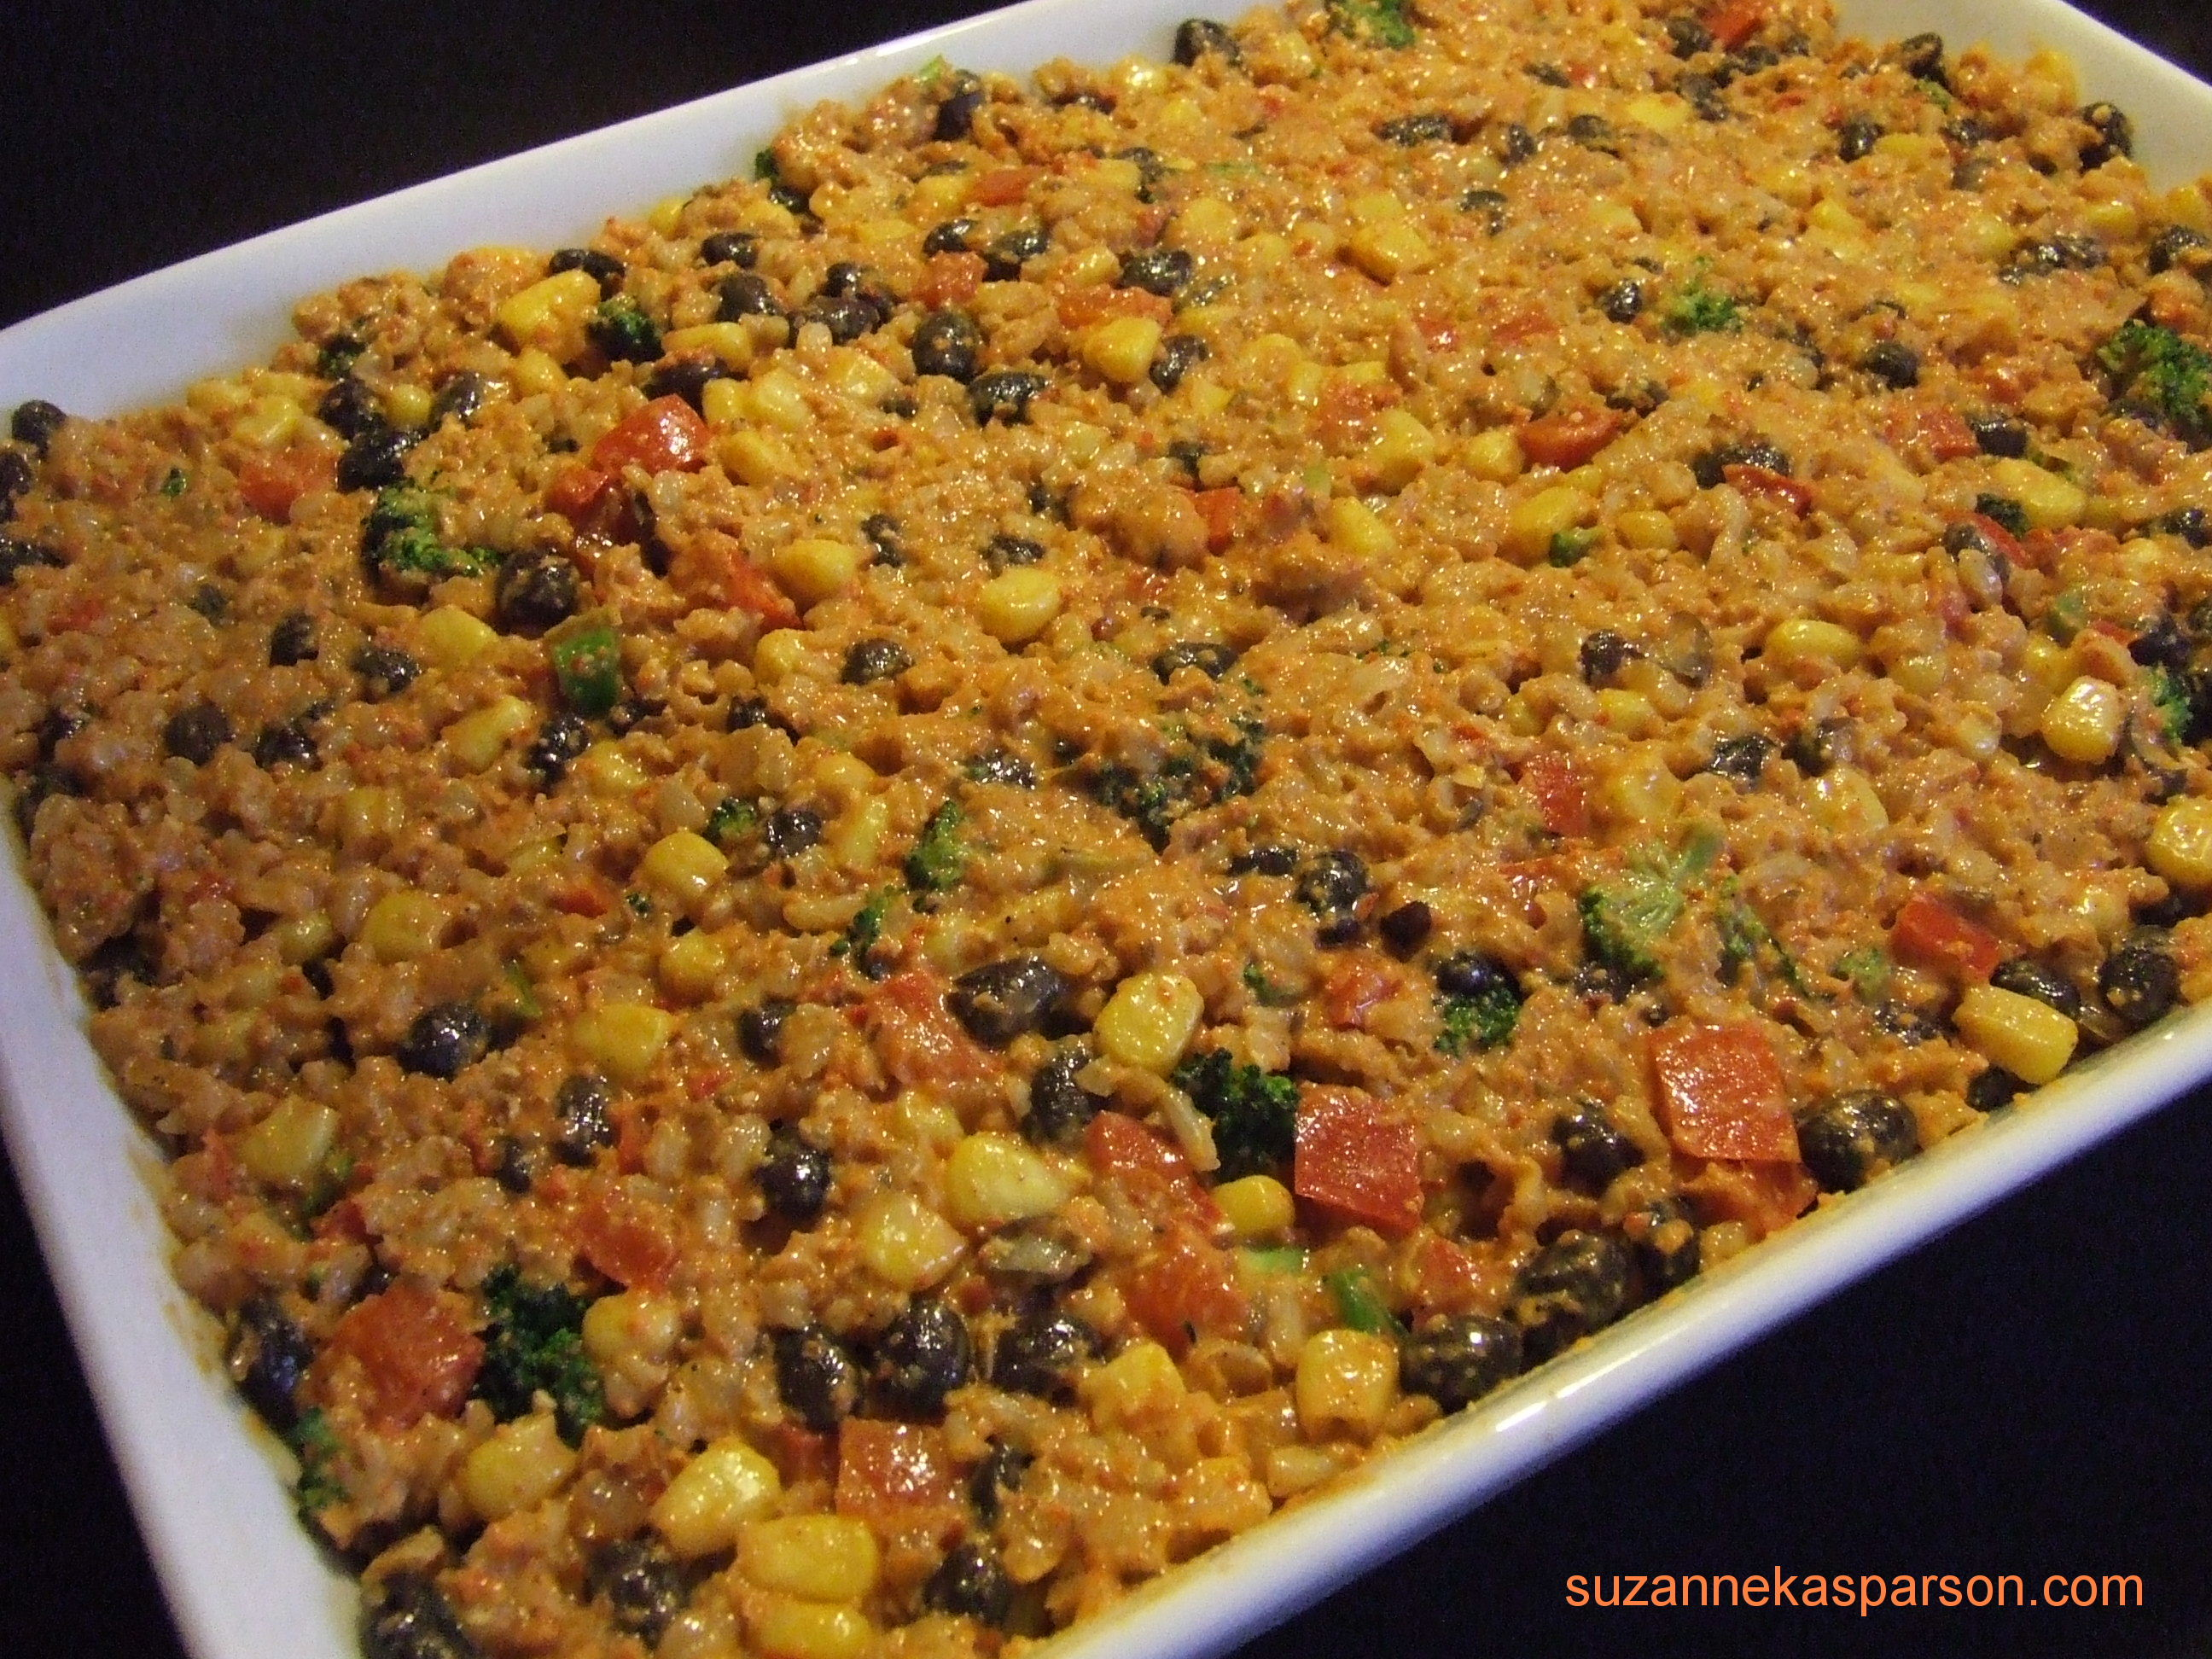 ... mexican rice casserole allfreecasserolerecipes com mexican rice